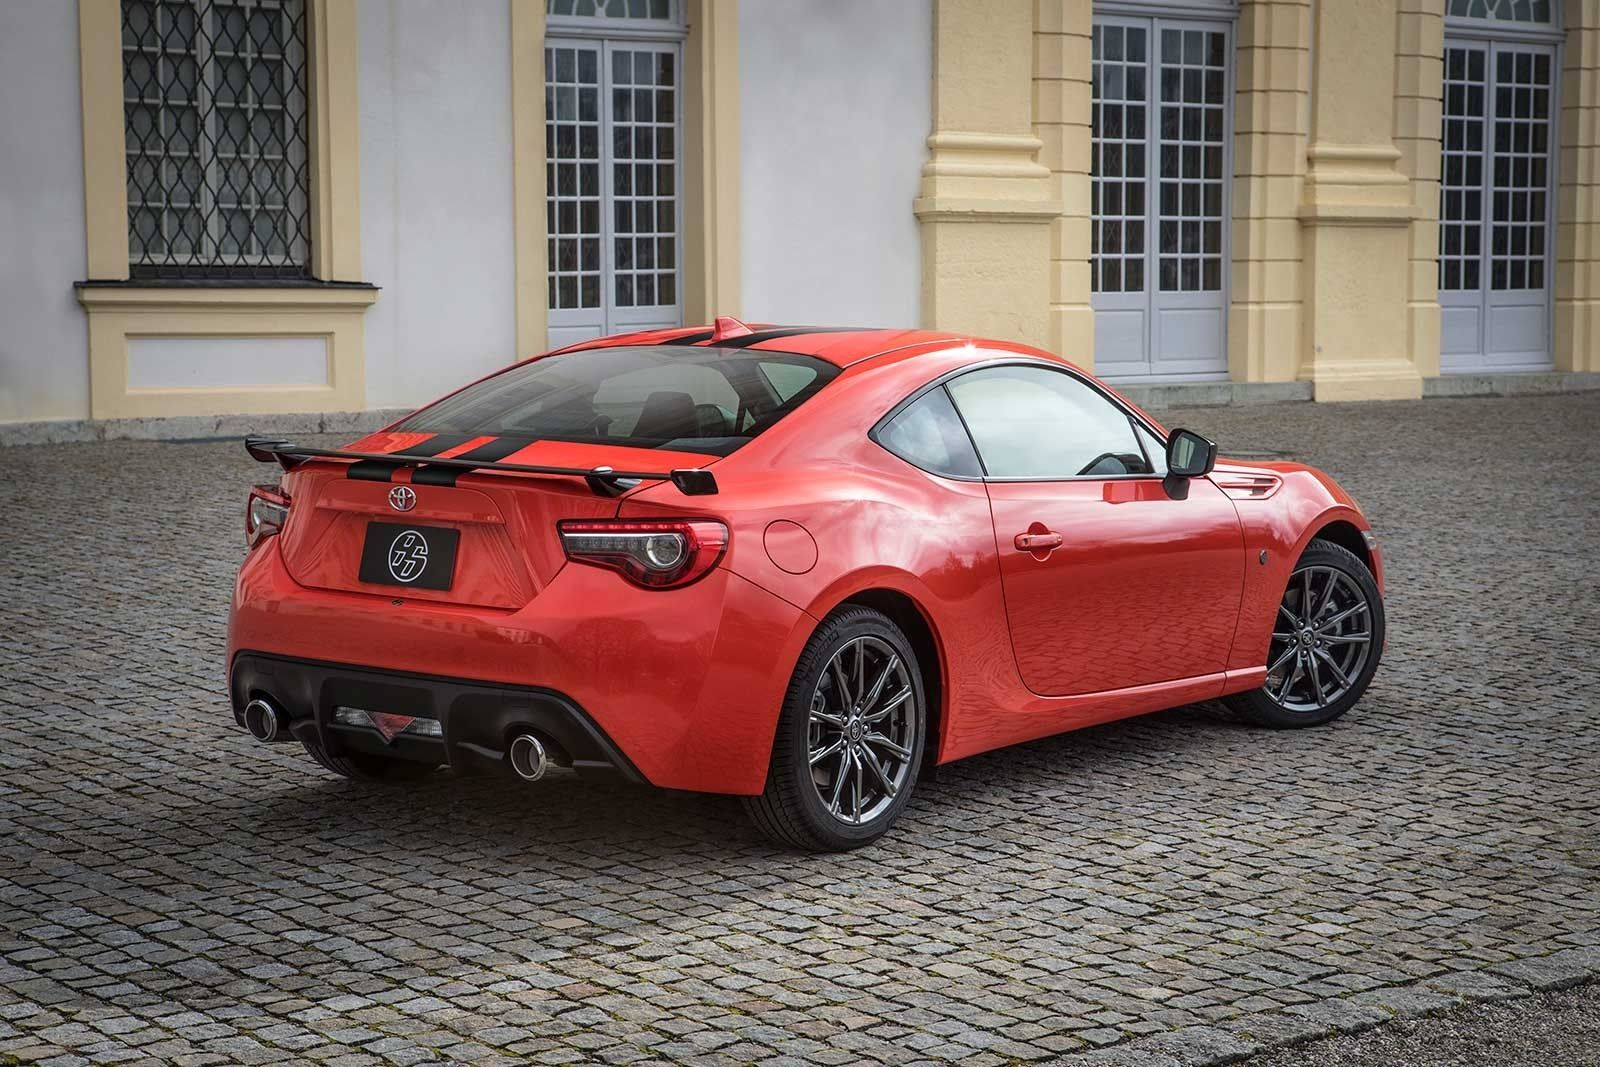 2018 Toyota Gt 86 Price and Release date Cool sports